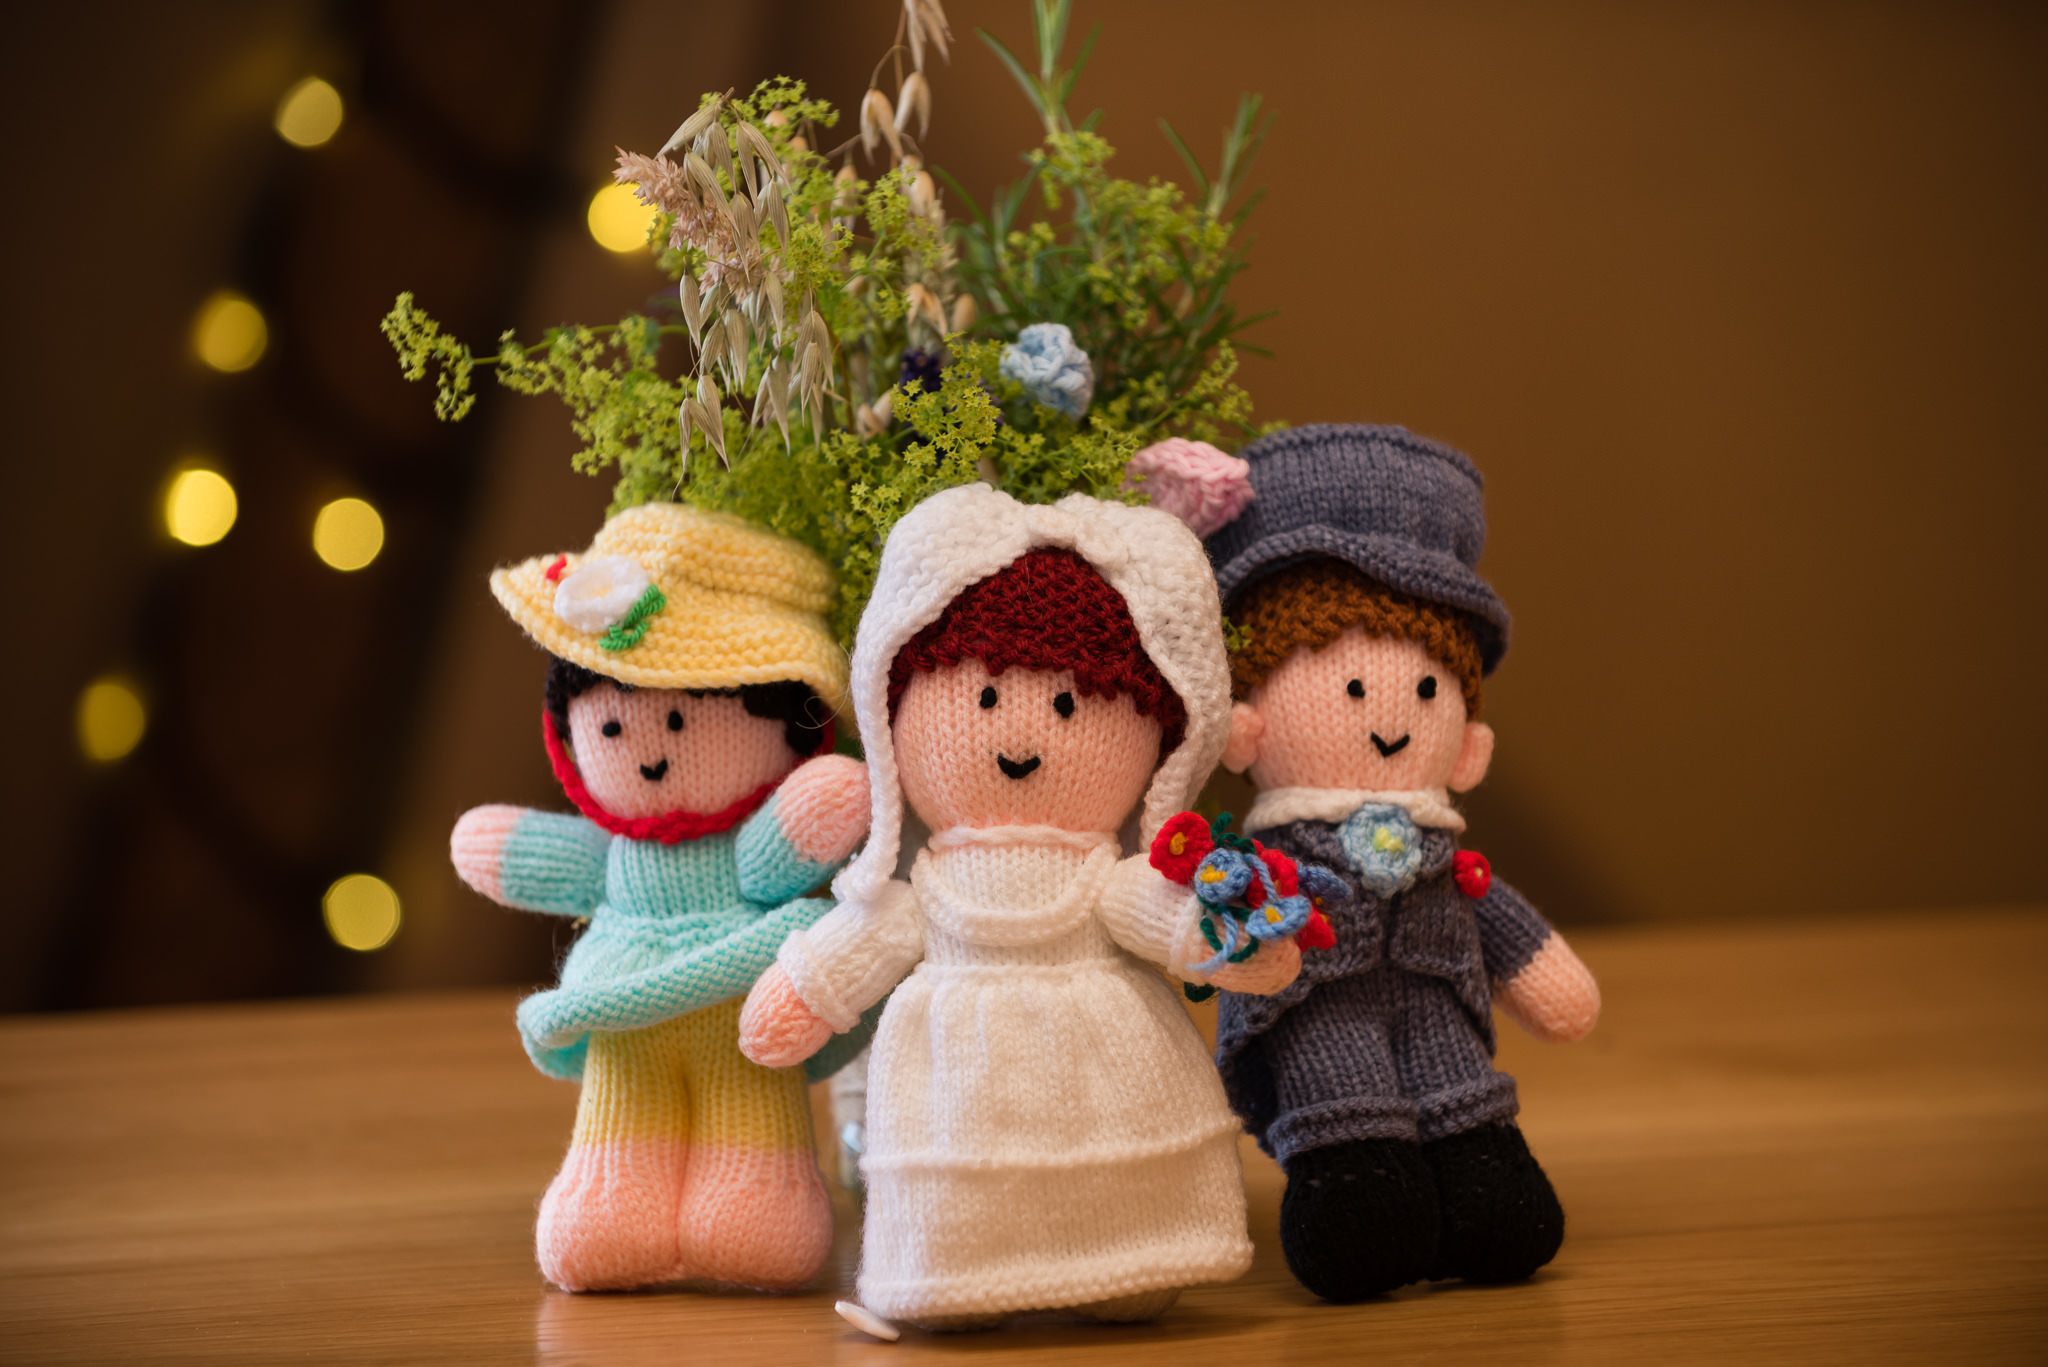 Knitted wedding dolls